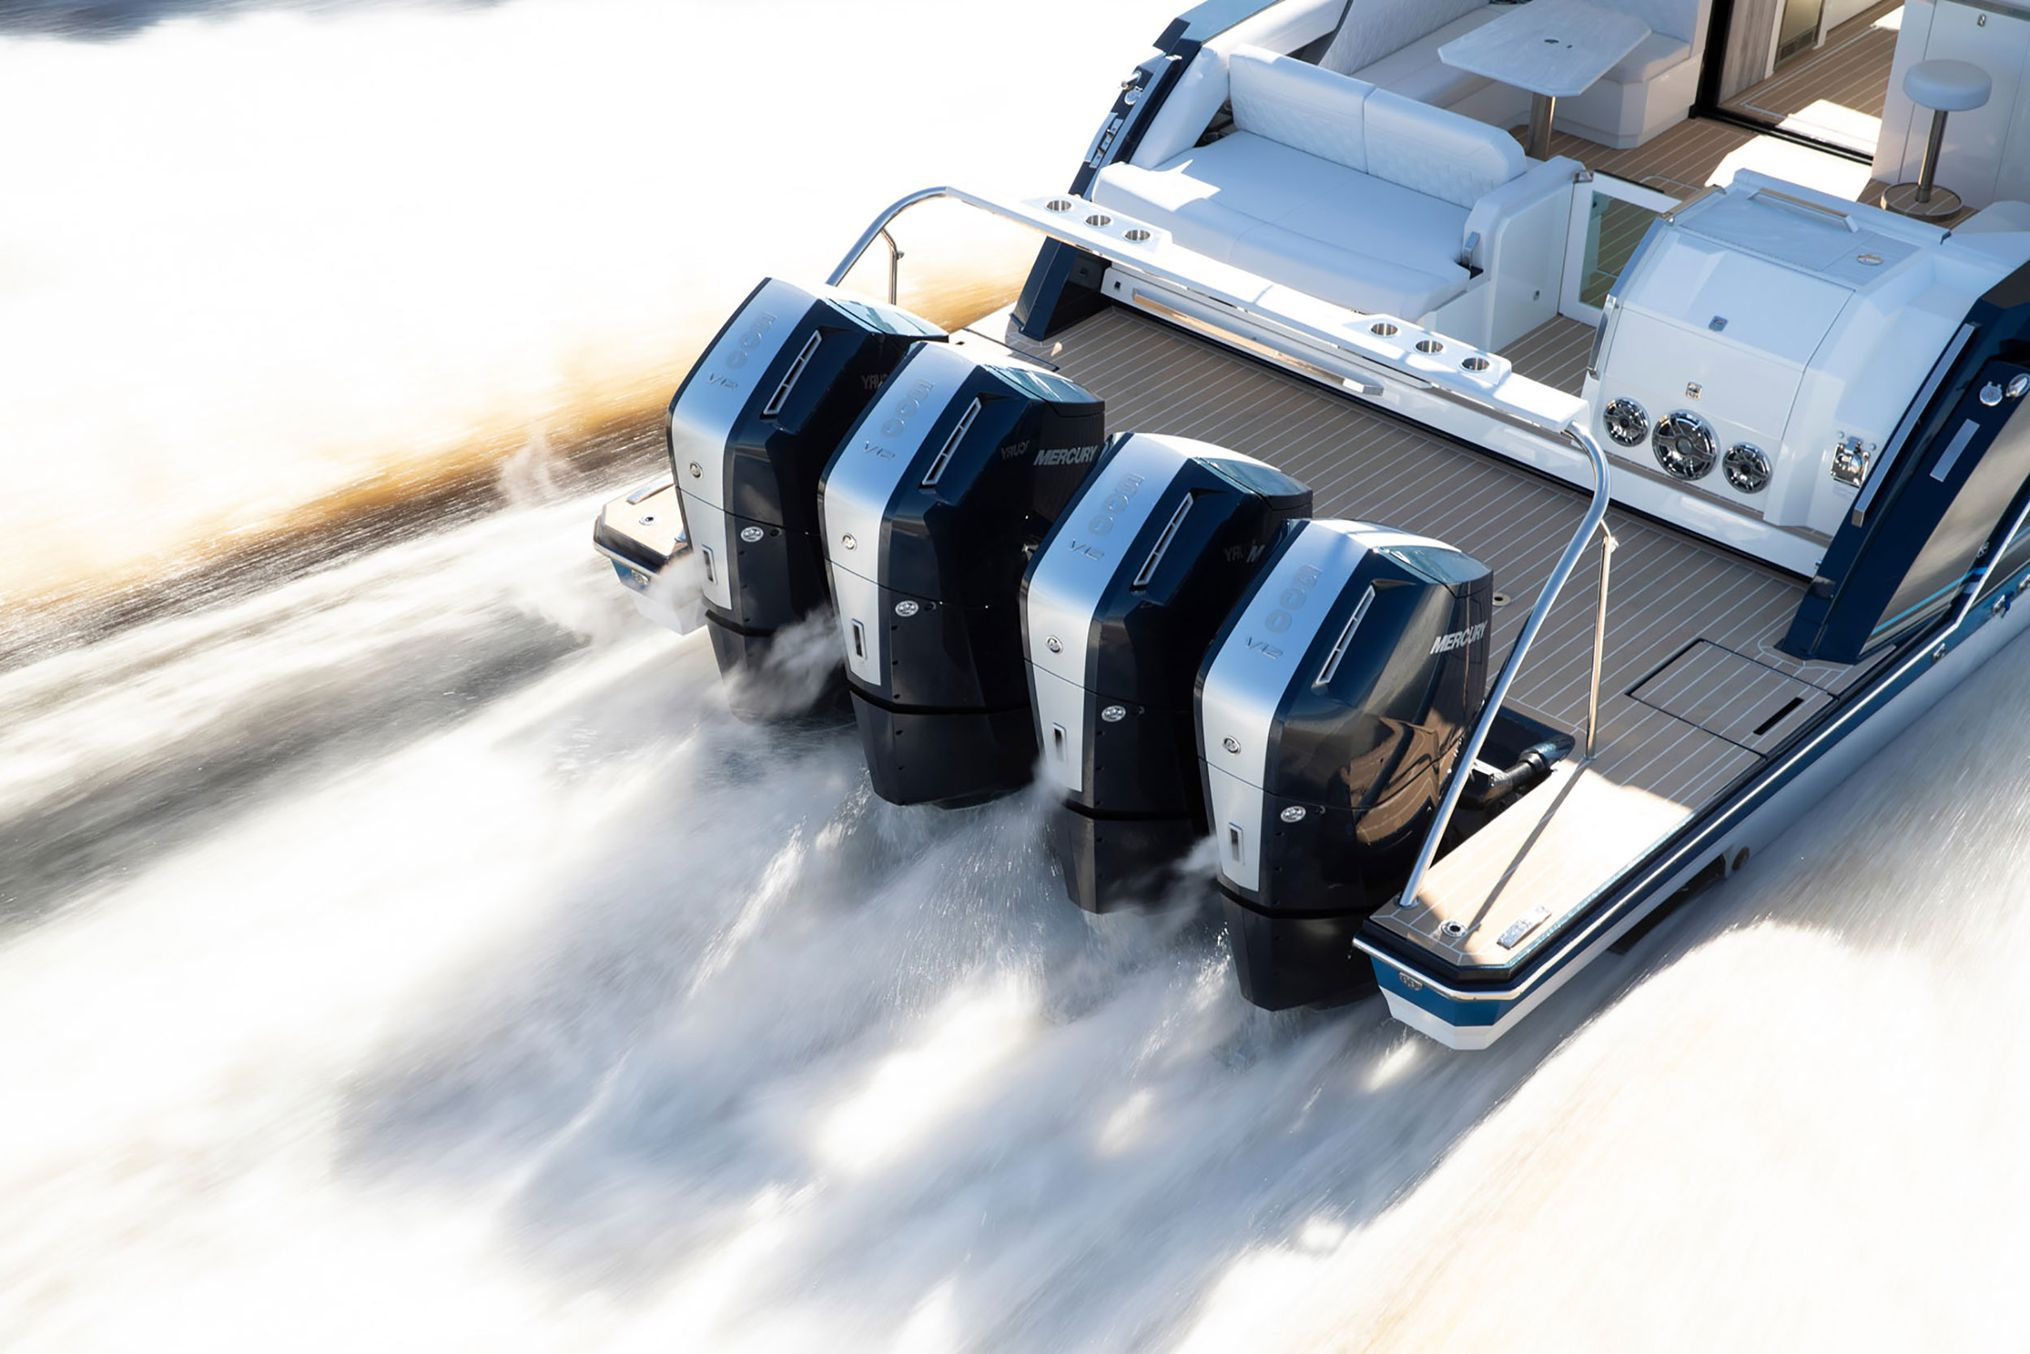 Mercury's new 600hp Verado is the perfect choice for powering many of today's big fishing machines.